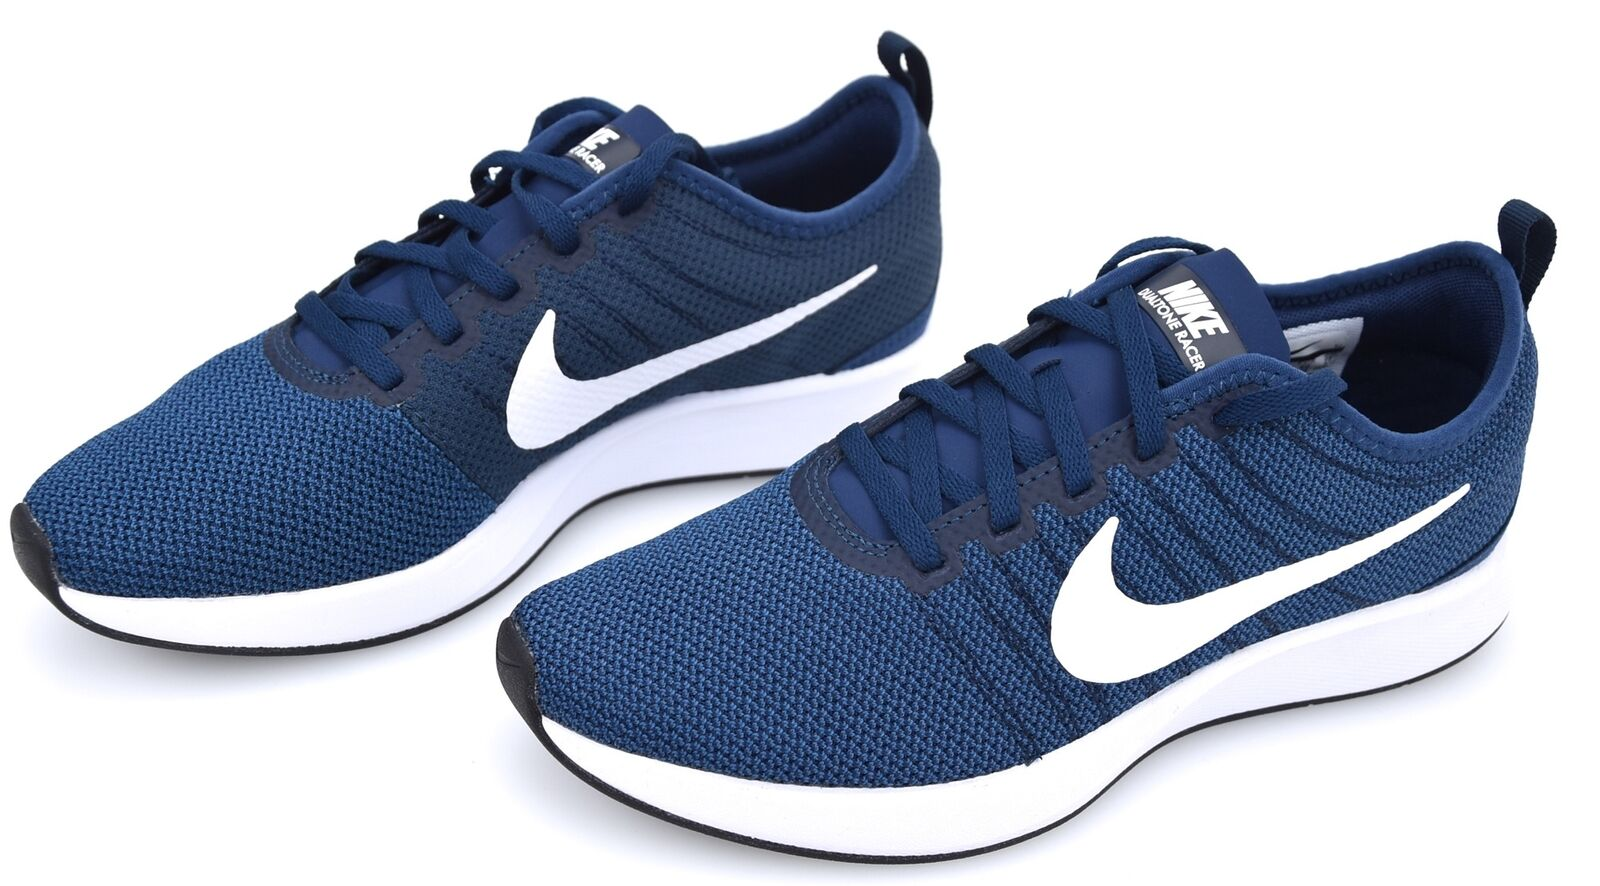 NIKE Homme SNEAKER Chaussures CASUAL FREE TIME CODE 918227 2018 NIKE DUALTONE RACER